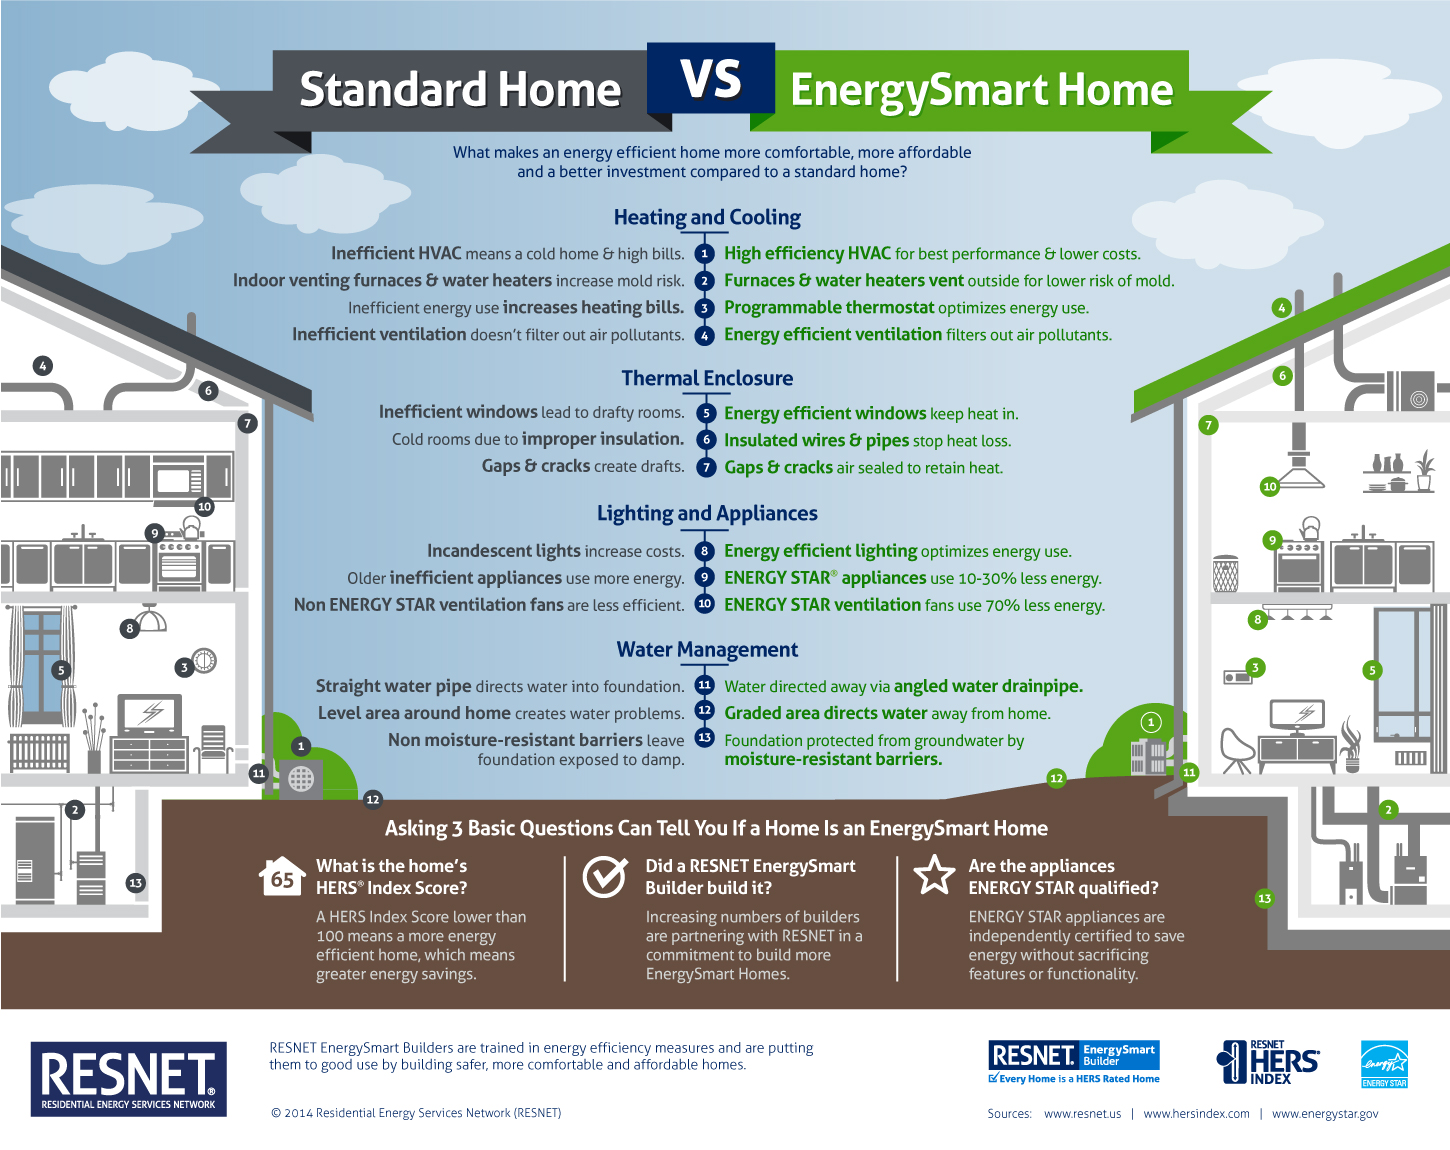 standard-home-vs-energysmart-home